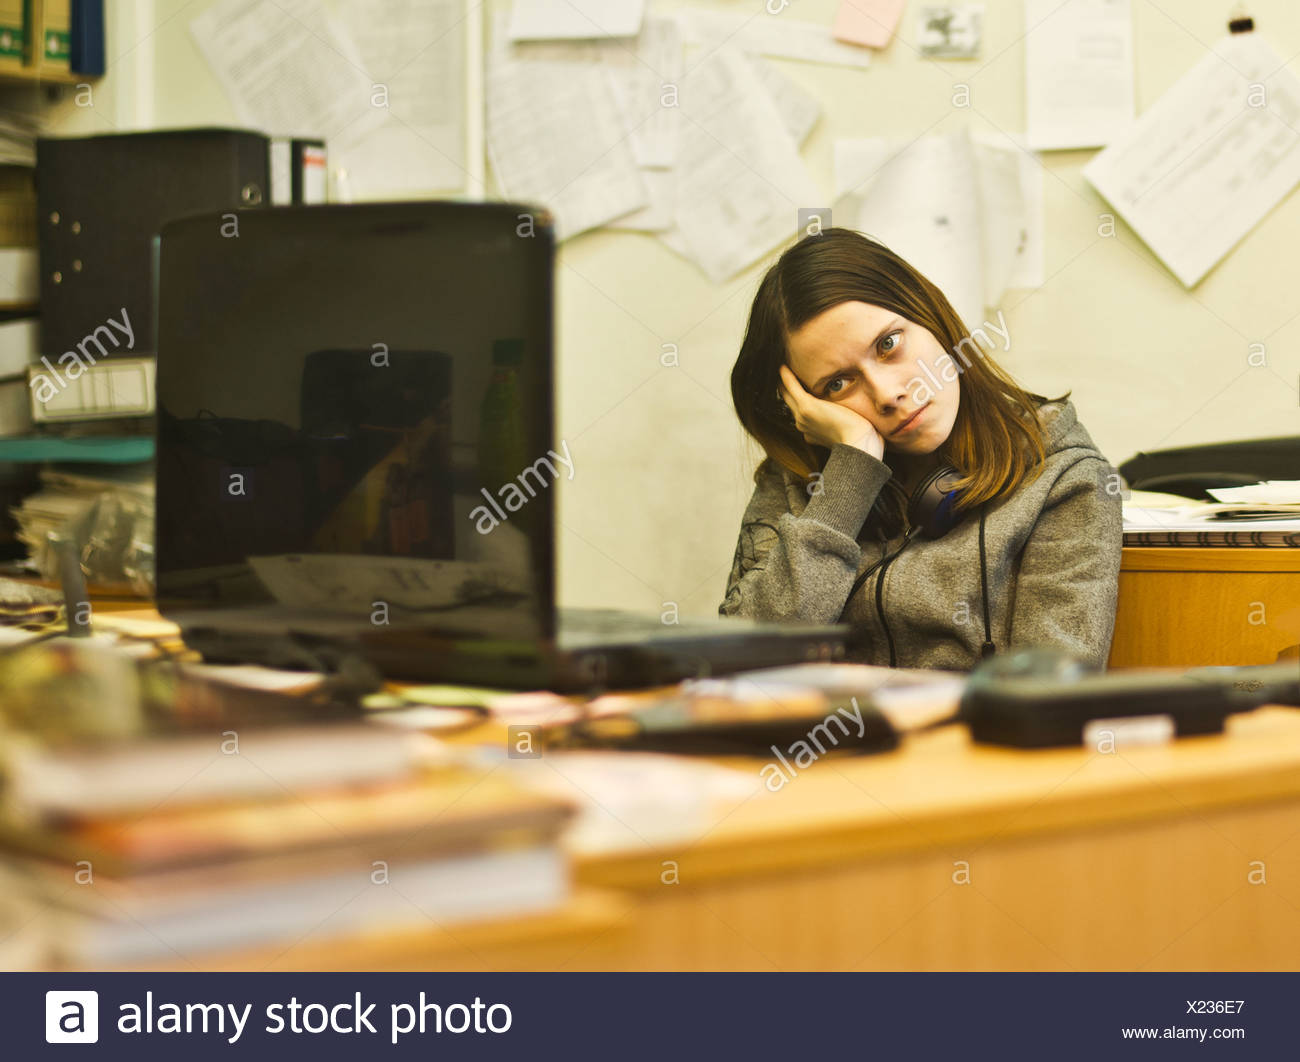 Bored young woman at desk leaning on elbow - Stock Image